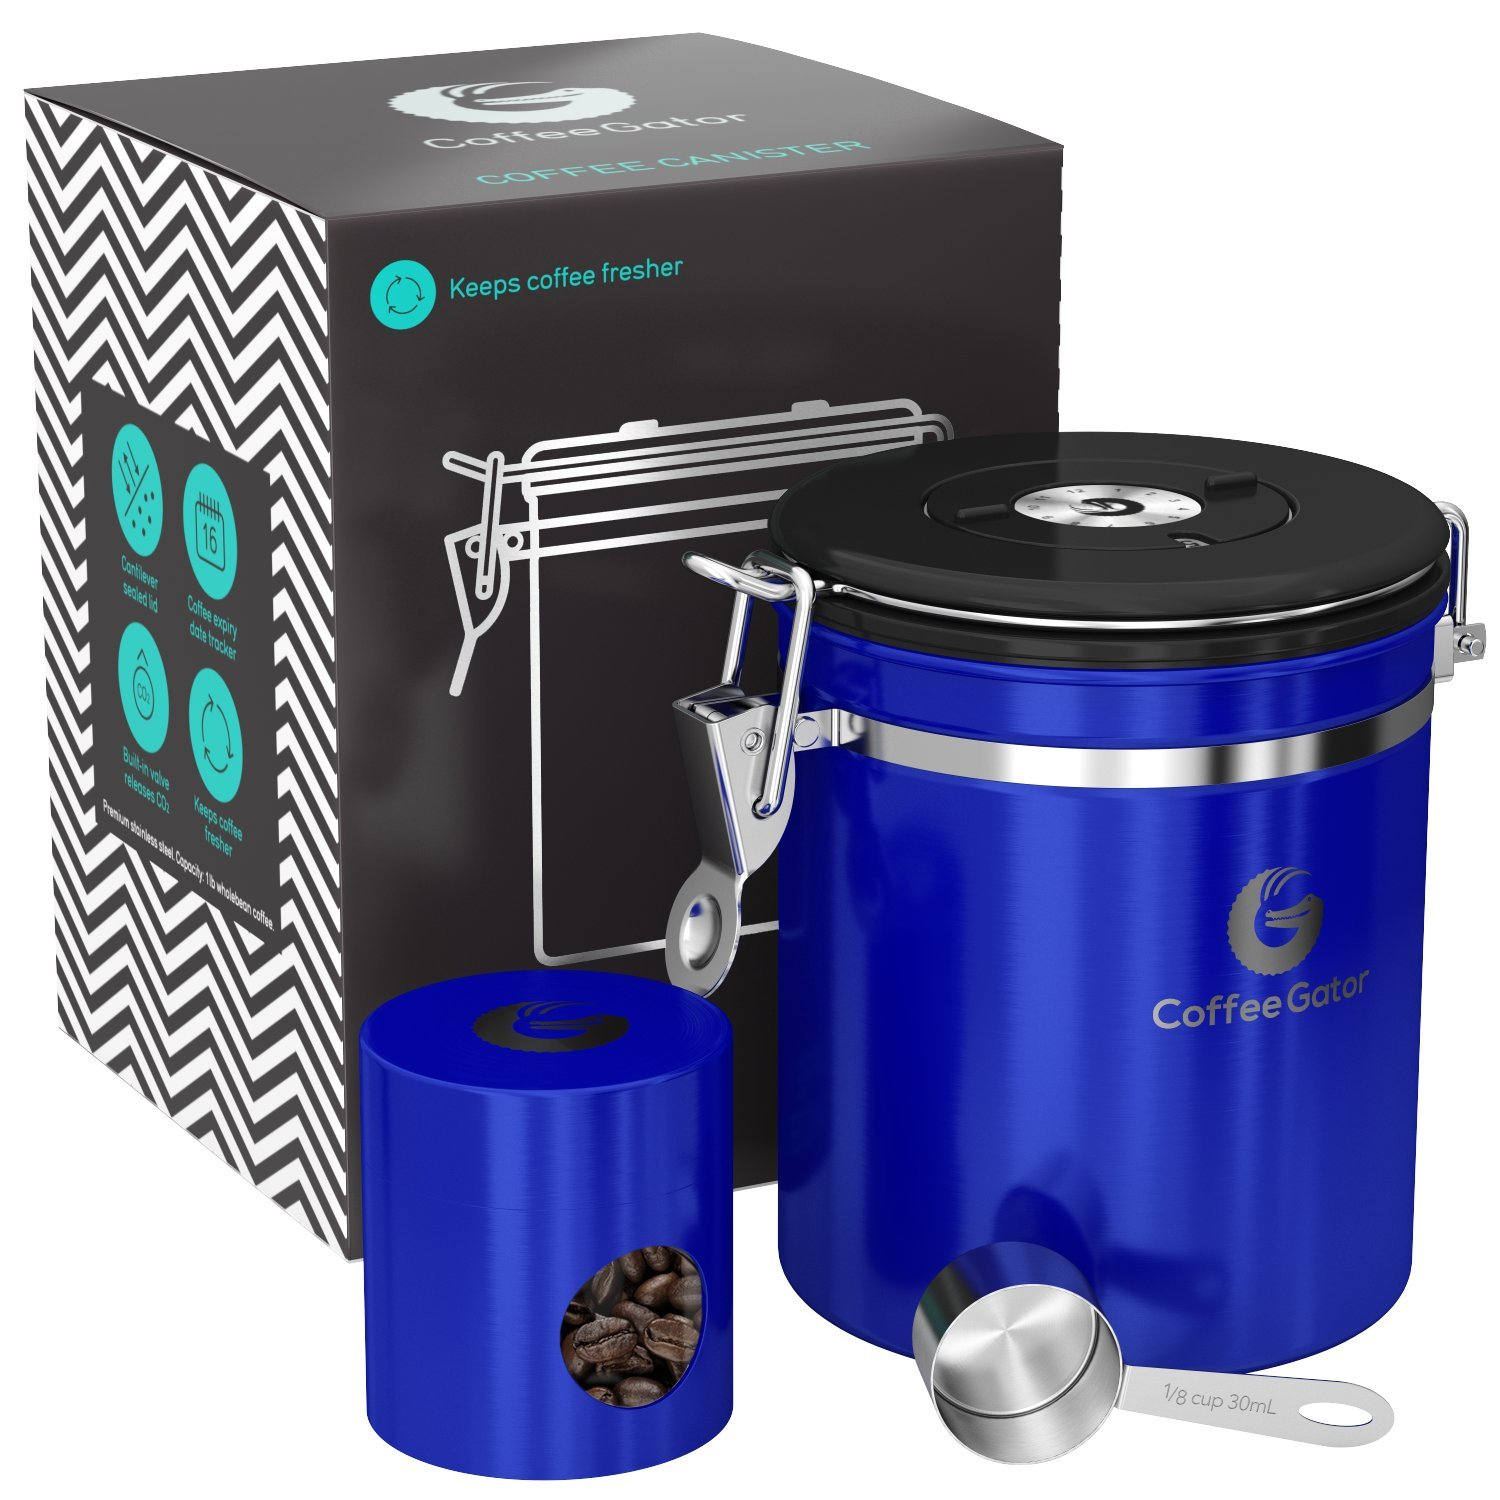 Coffee Gator Stainless Steel Container - Canister with co2 Valve, Scoop, and Travel Jar (Blue, Gray) COMIN18JU047977